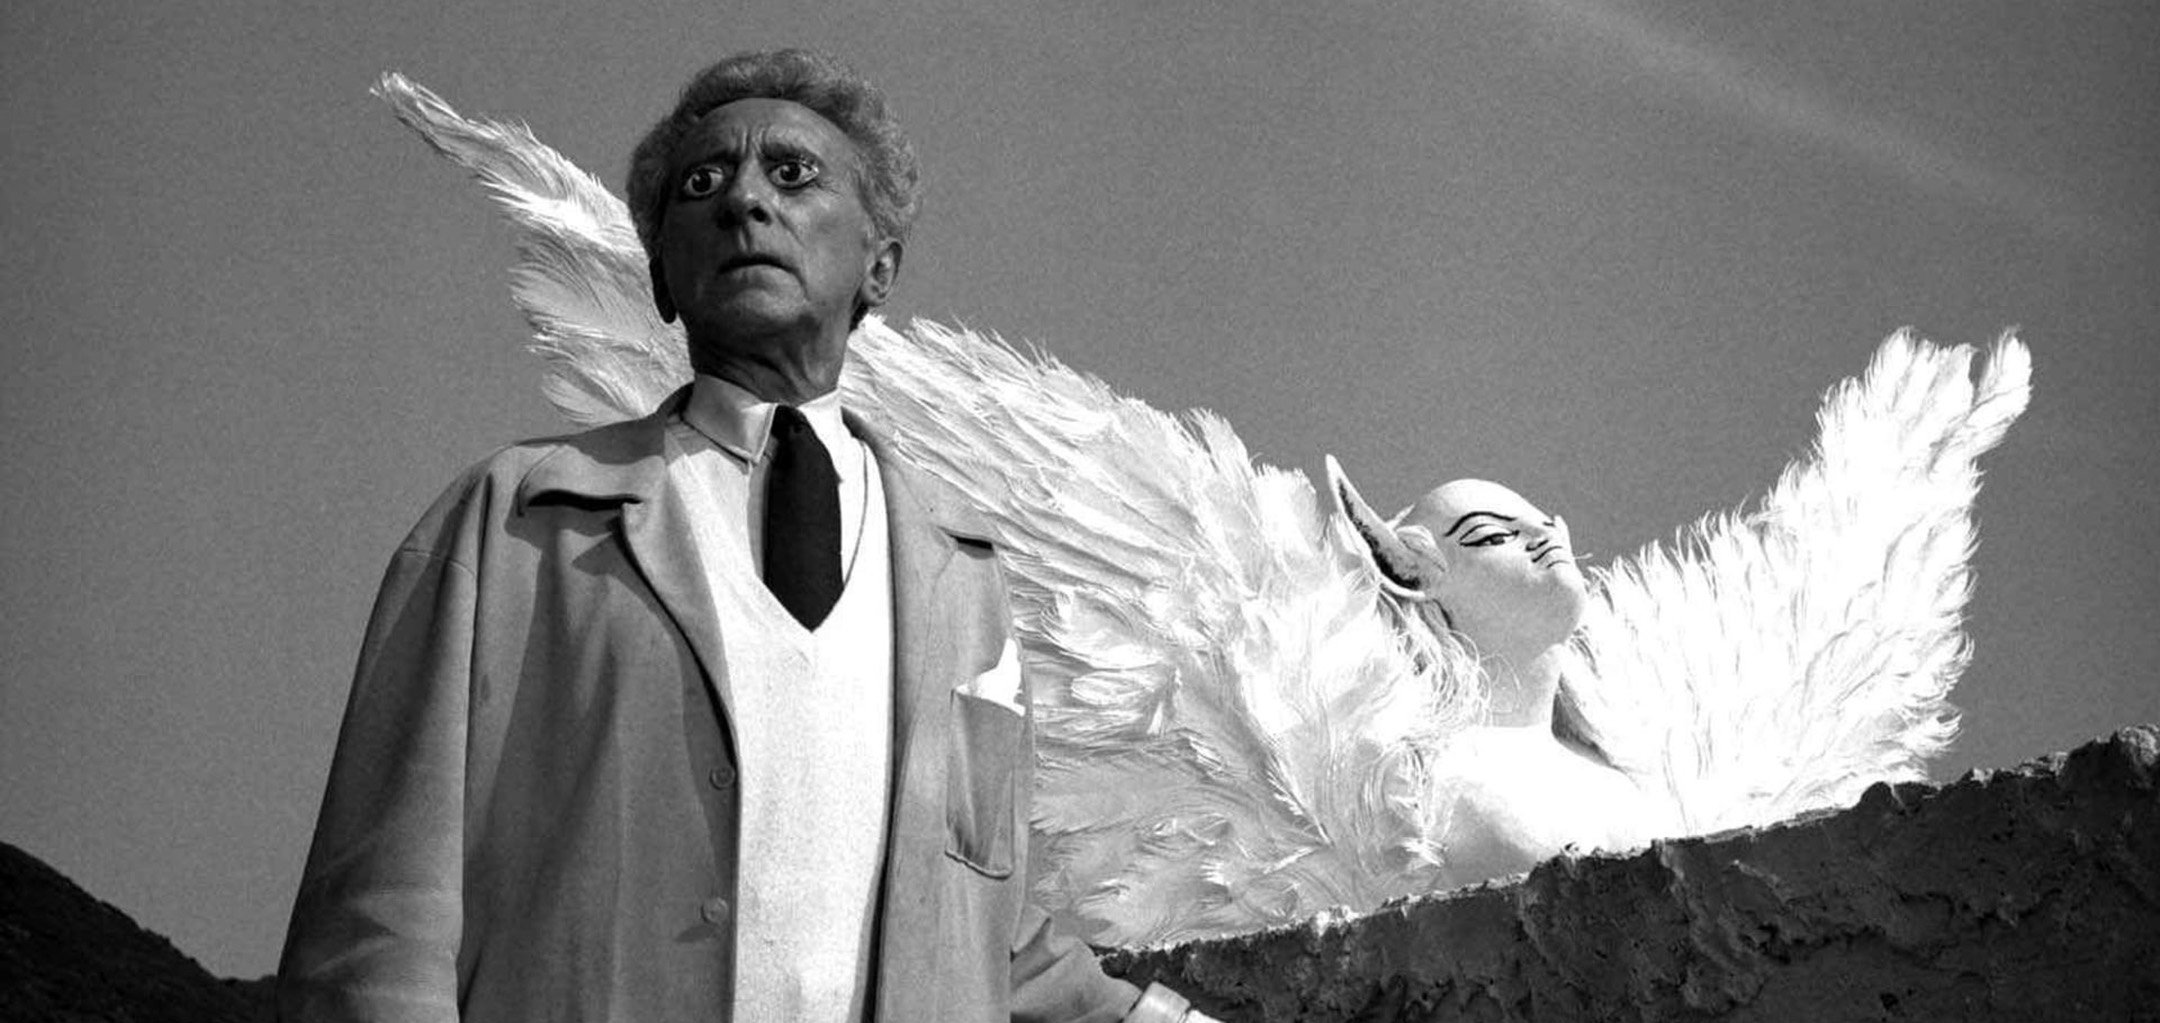 Jean Cocteau with painted eyes and an angel in the background in a still from 'Le Testament D'Orphée' (1960)